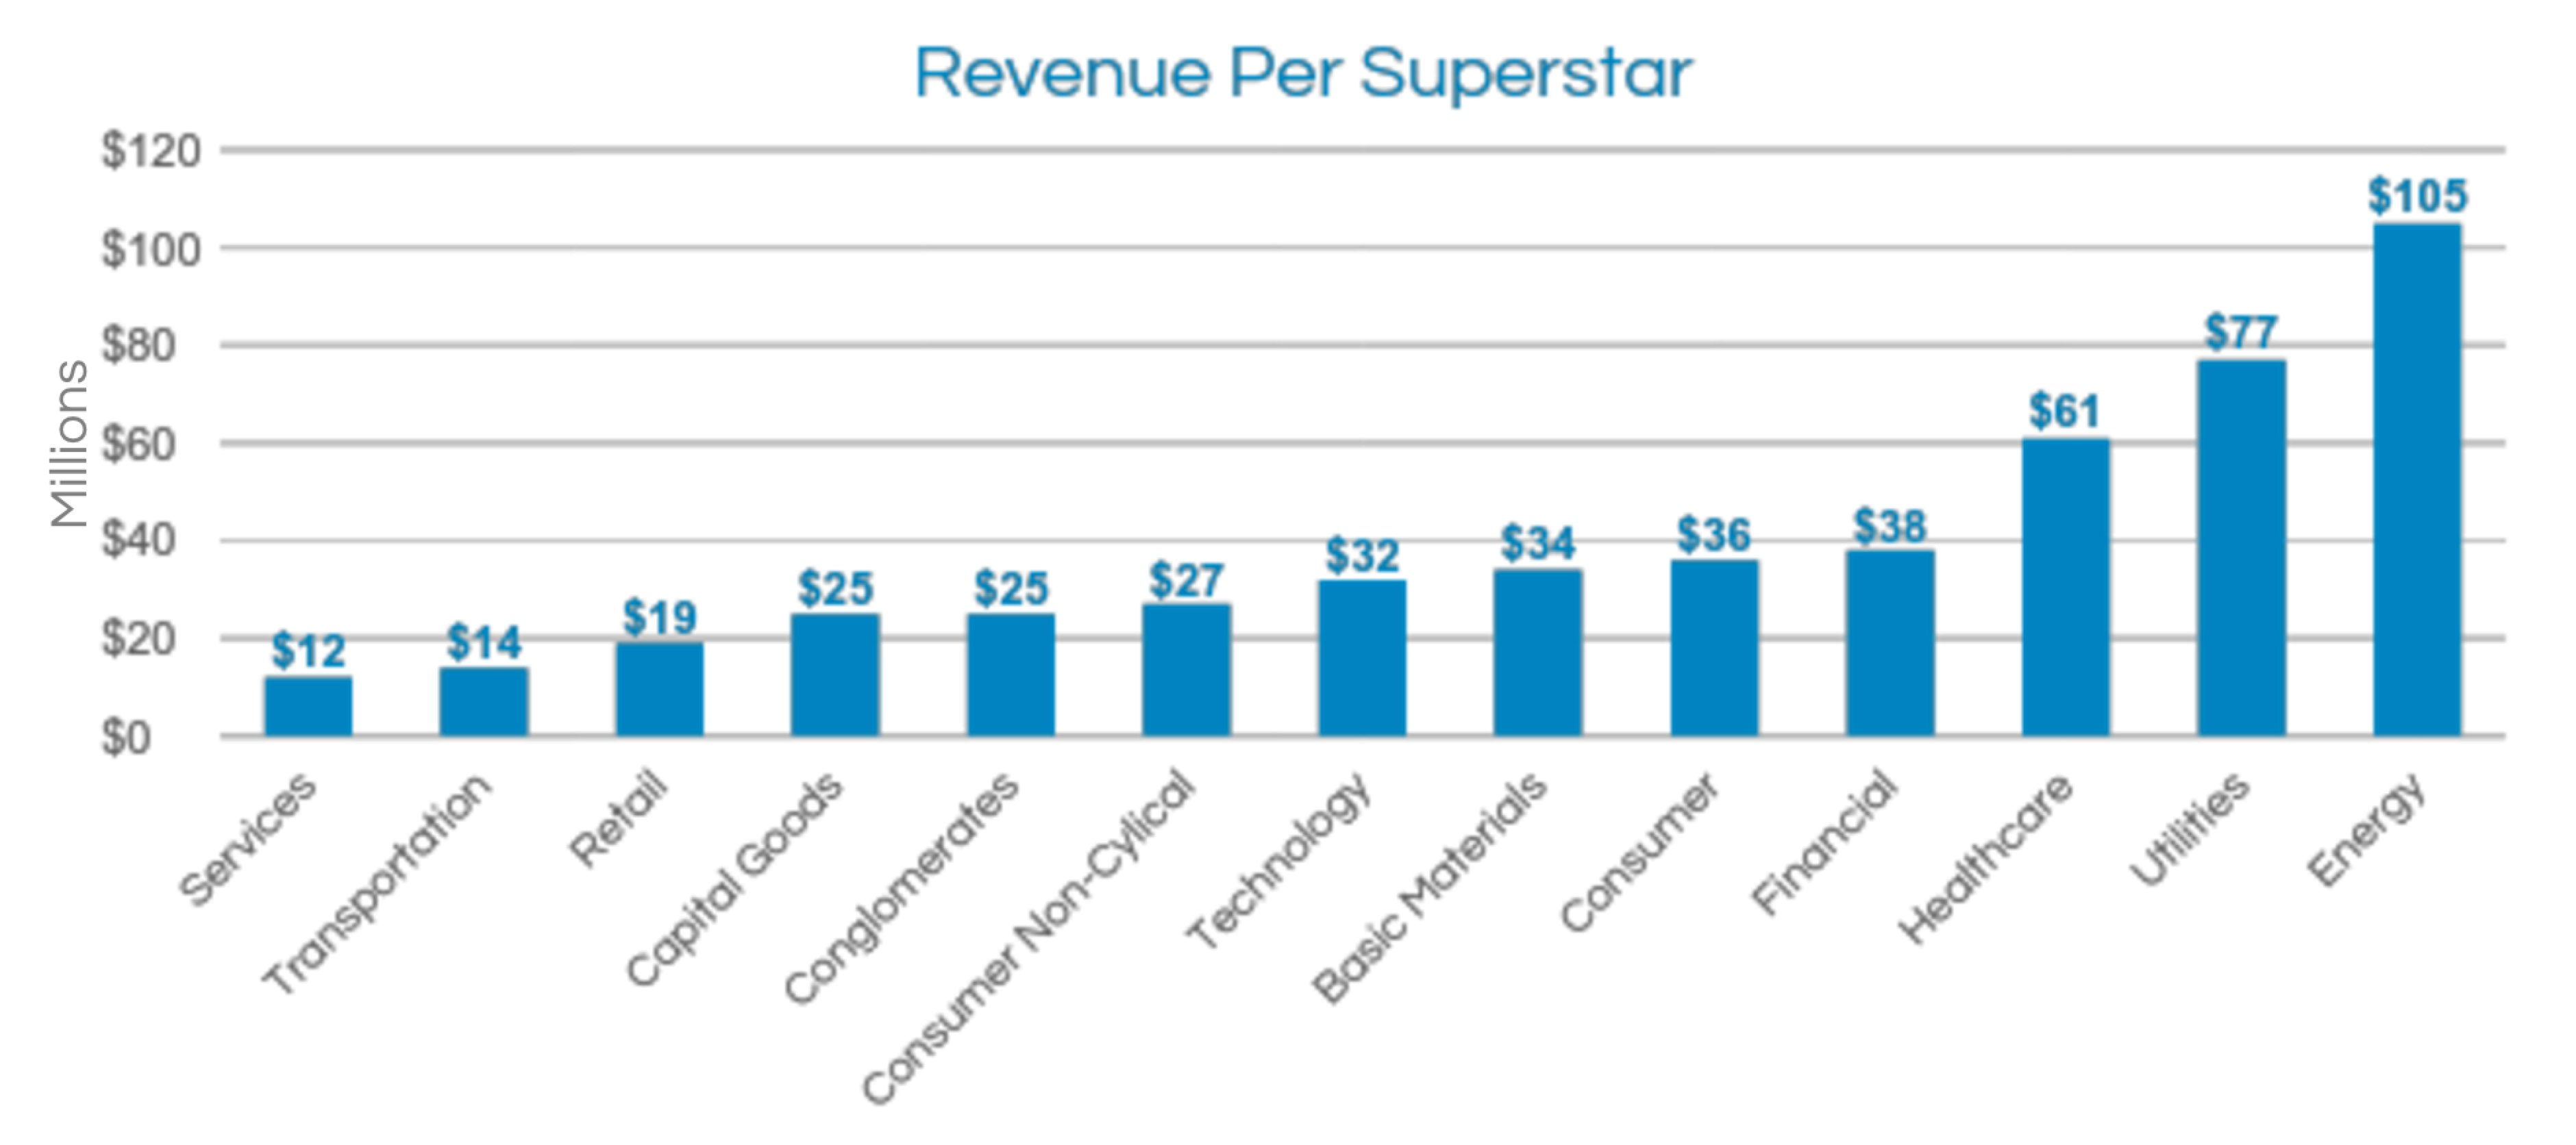 The revenue per employee of a superstar can be $12 million to $105 million per year based on industry.